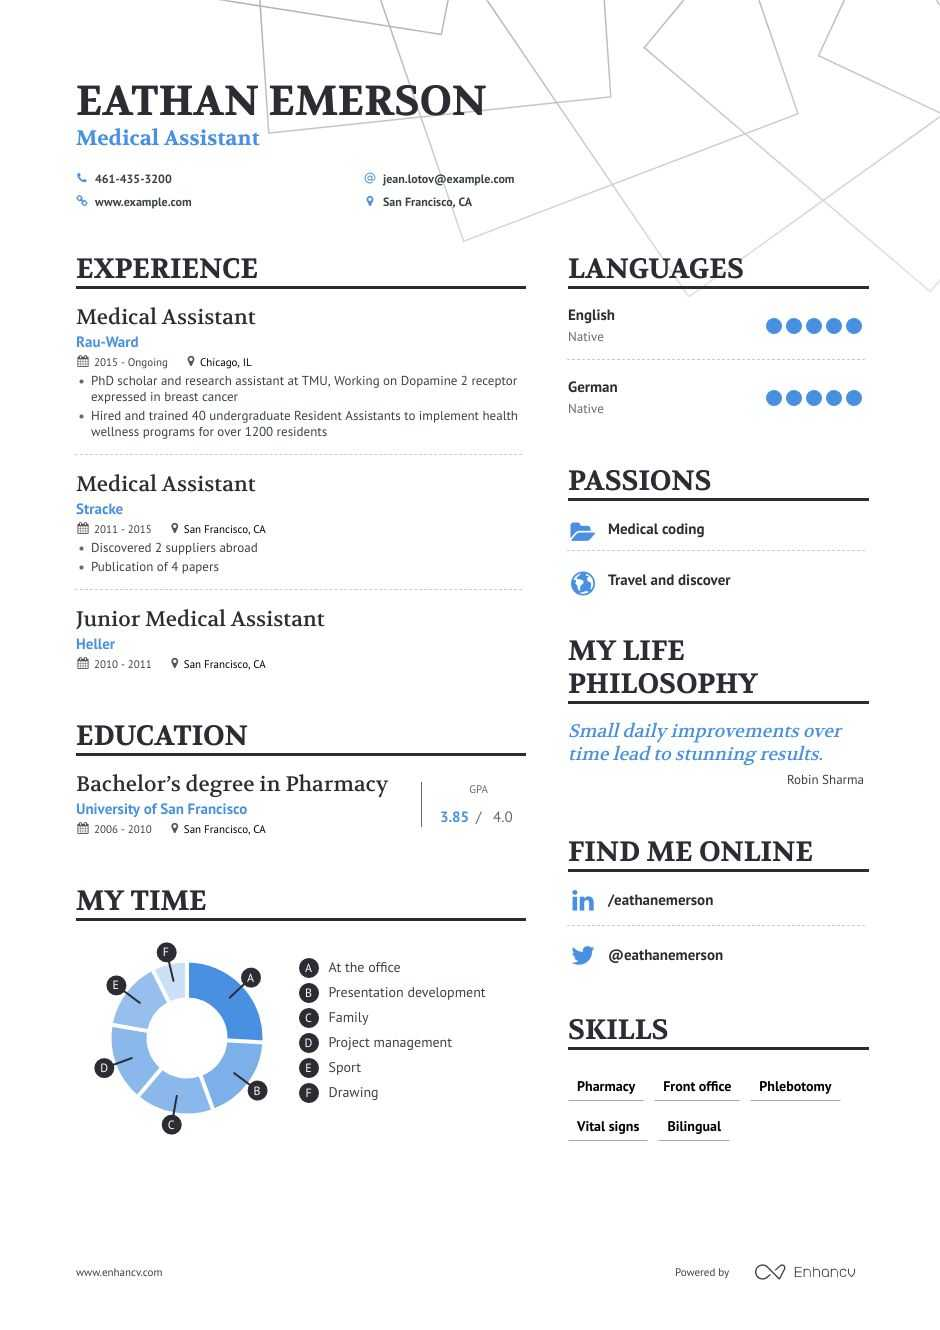 top medical assistant resume examples samples for enhancv professional summary daily Resume Professional Summary For Resume For Medical Assistant